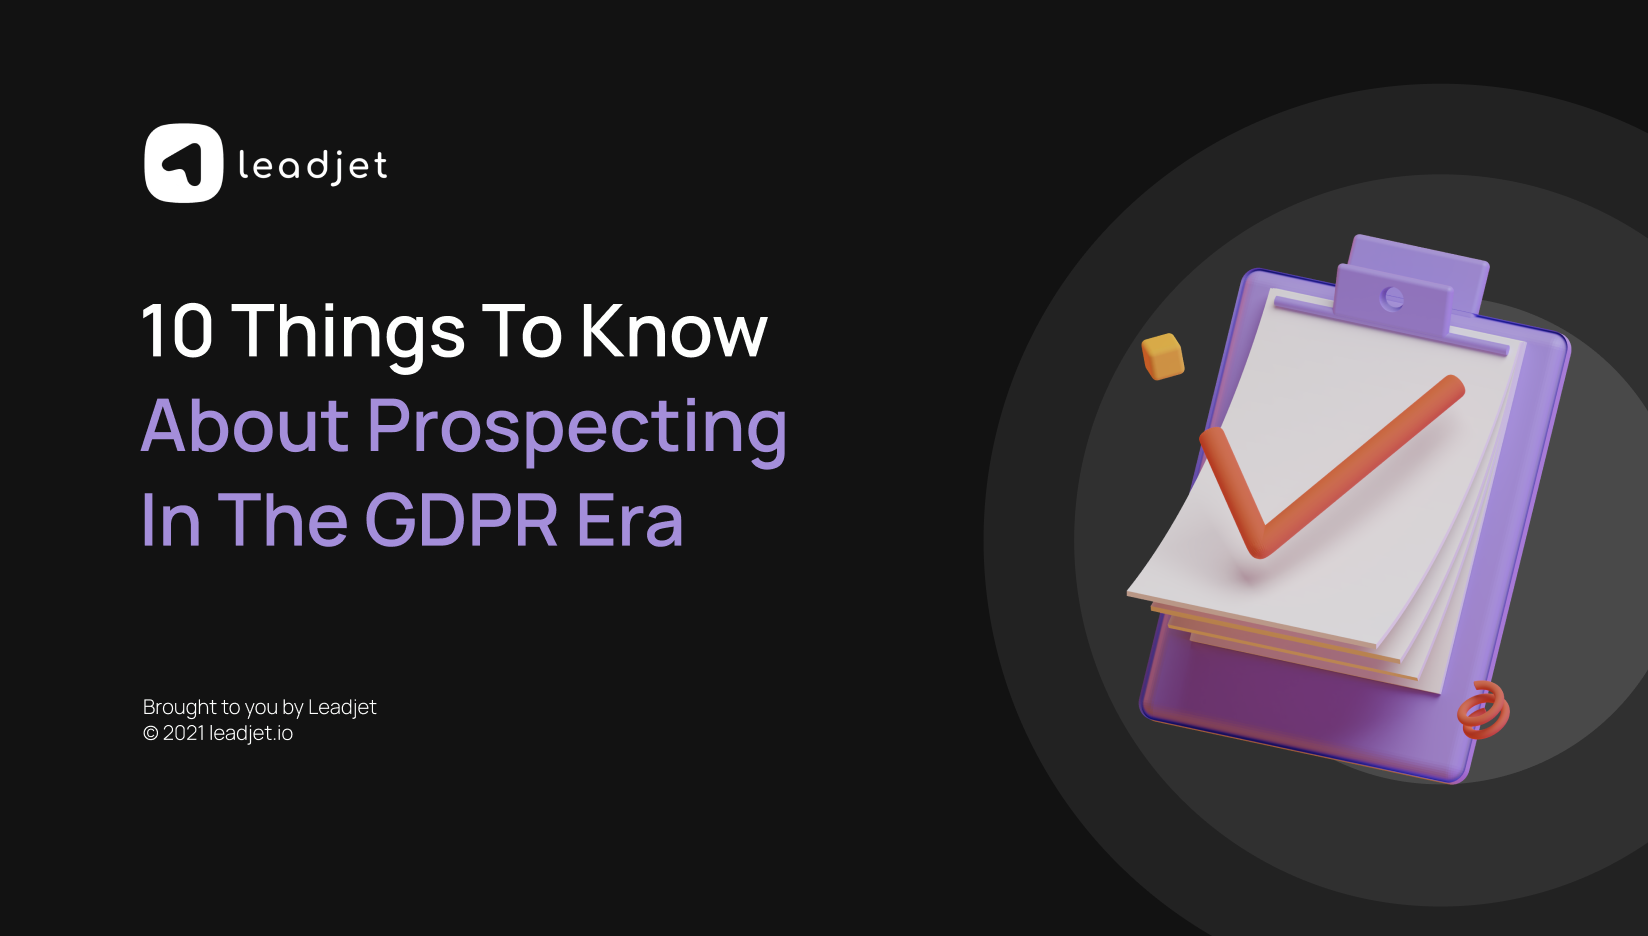 10 things you need to know about prospecting in the GDPR era